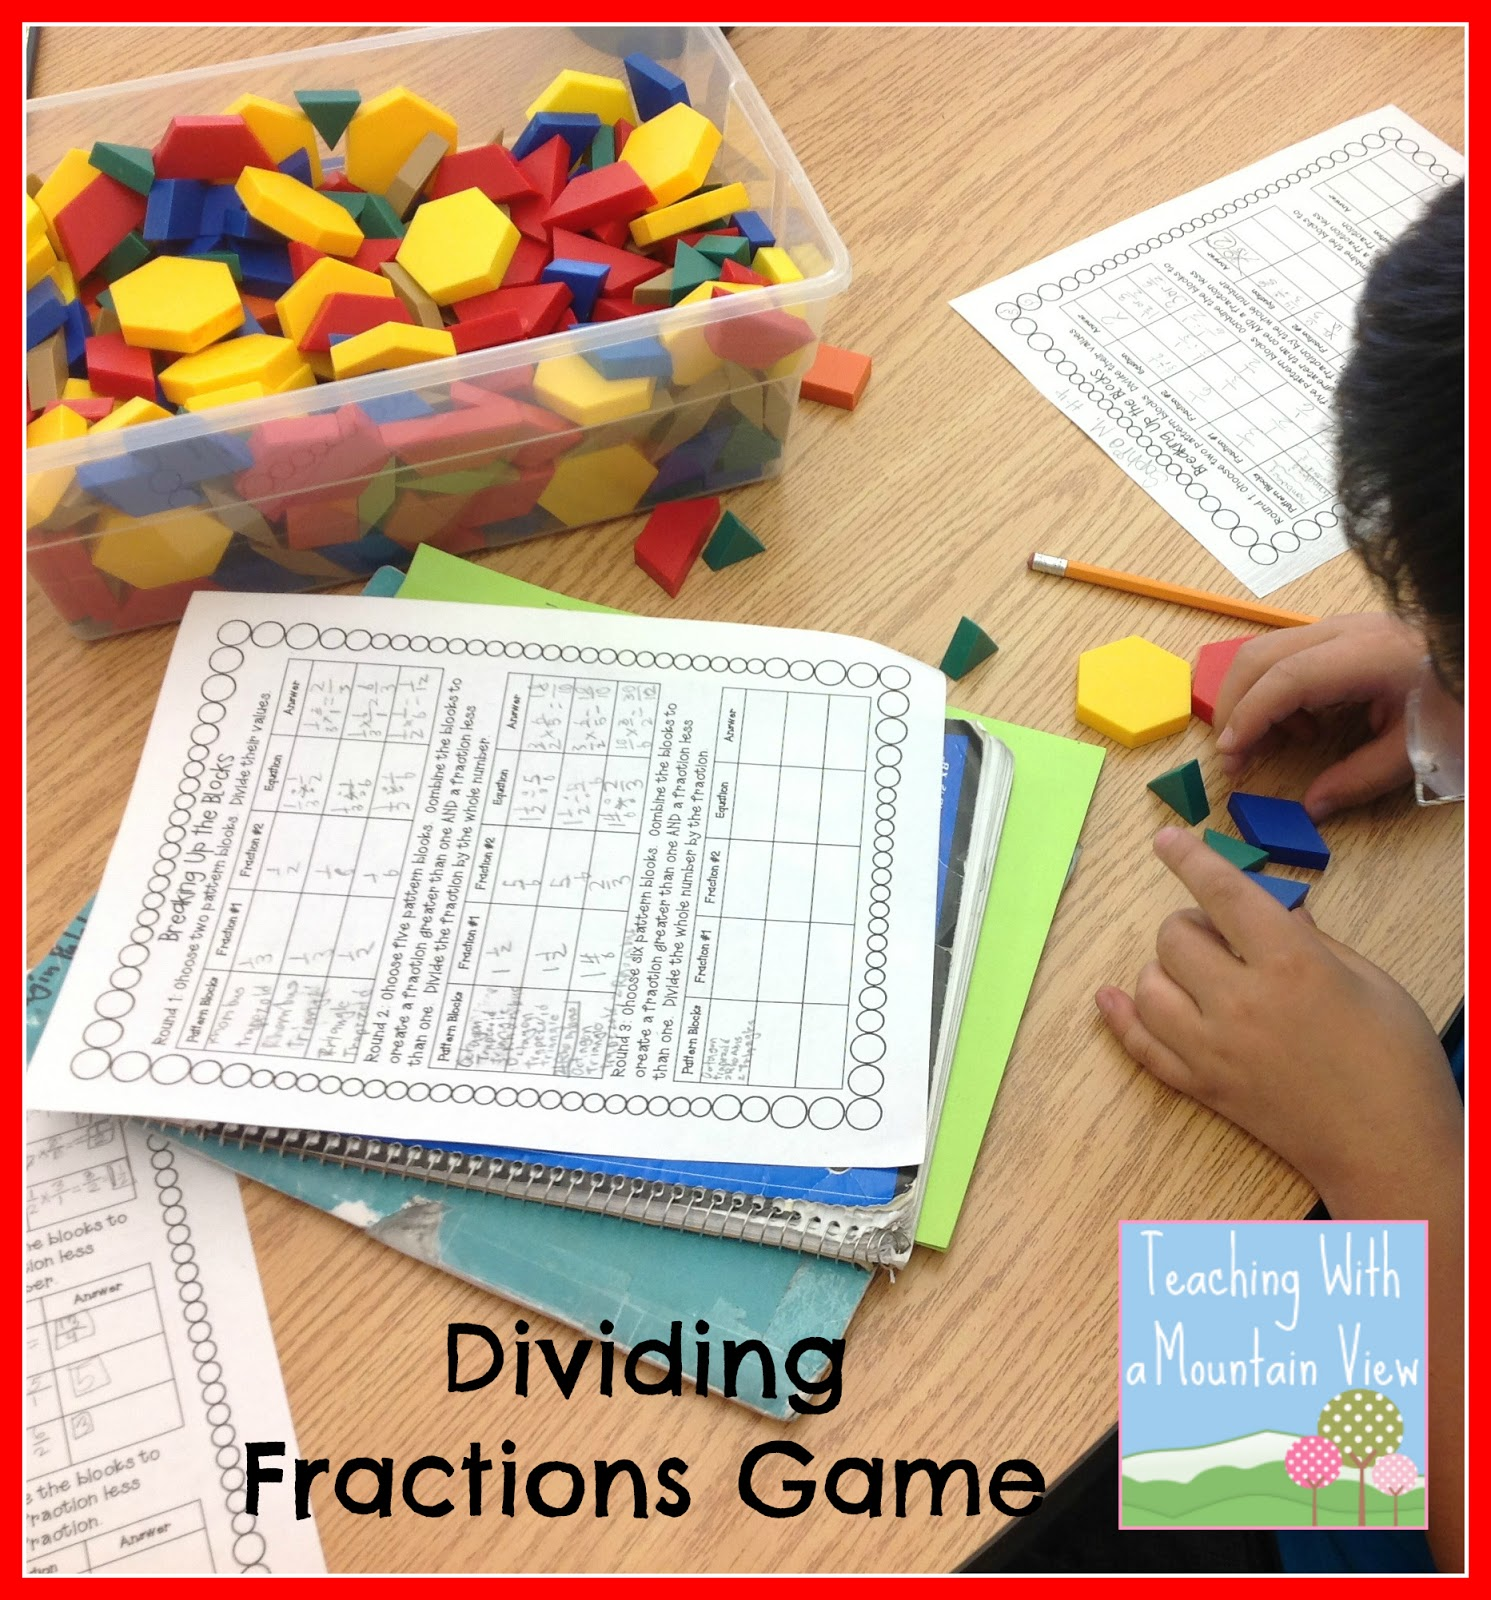 picture about Dividing Fractions Games Printable known as Schooling With a Mountain Belief: Dividing Fractions Anchor